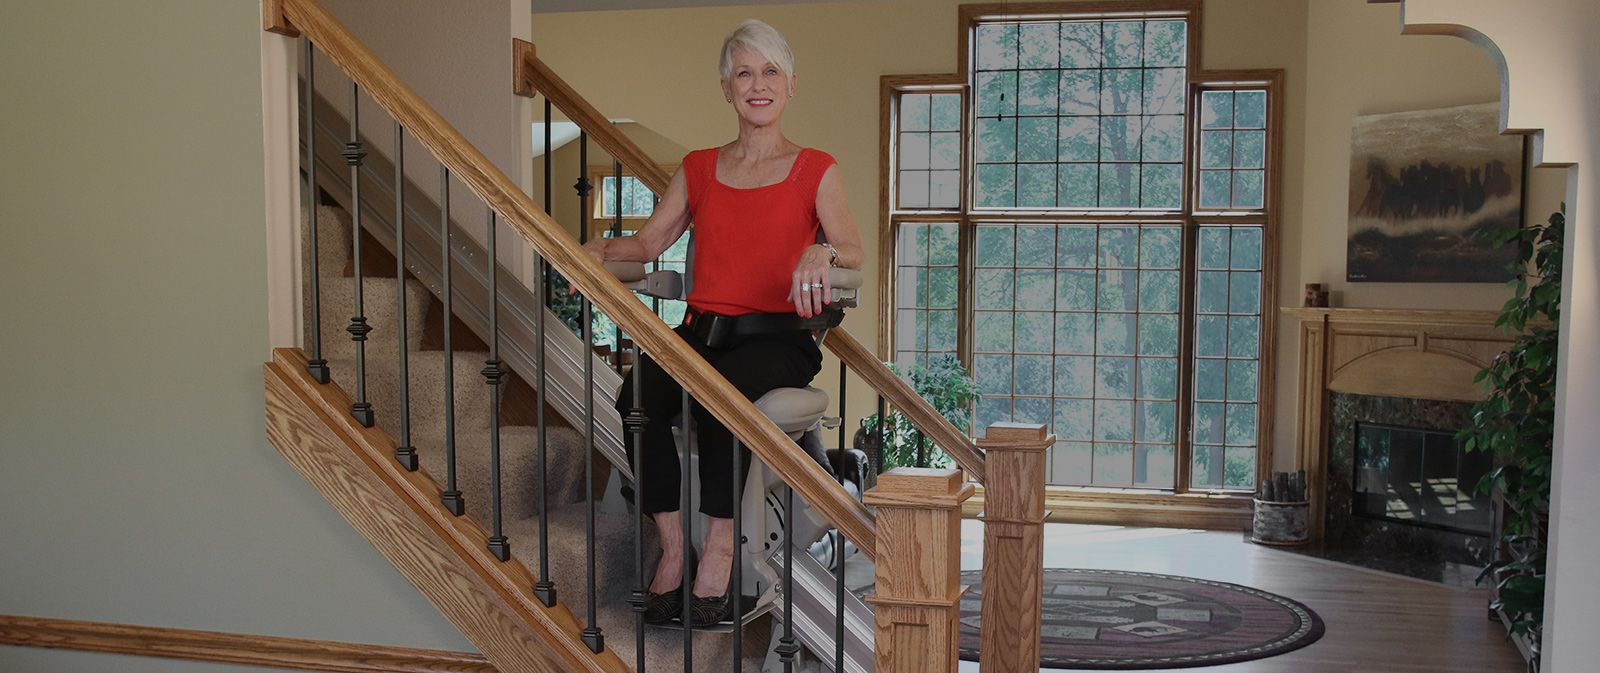 Bruno stairlift plano texas stair lifts stair lift